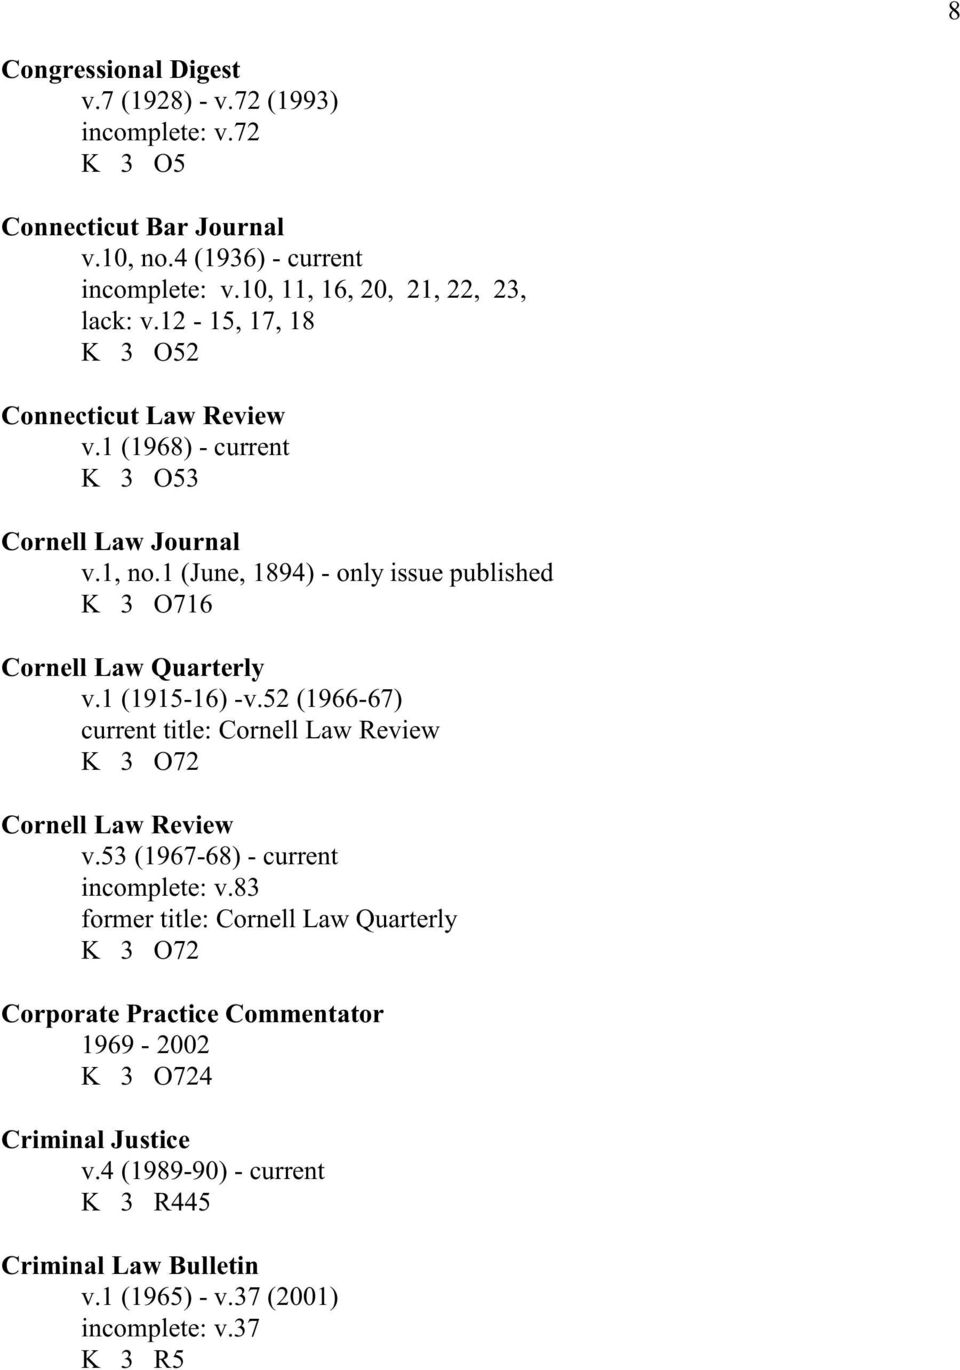 1 (June, 1894) - only issue published K 3 O716 Cornell Law Quarterly v.1 (1915-16) -v.52 (1966-67) current title: Cornell Law Review K 3 O72 Cornell Law Review v.